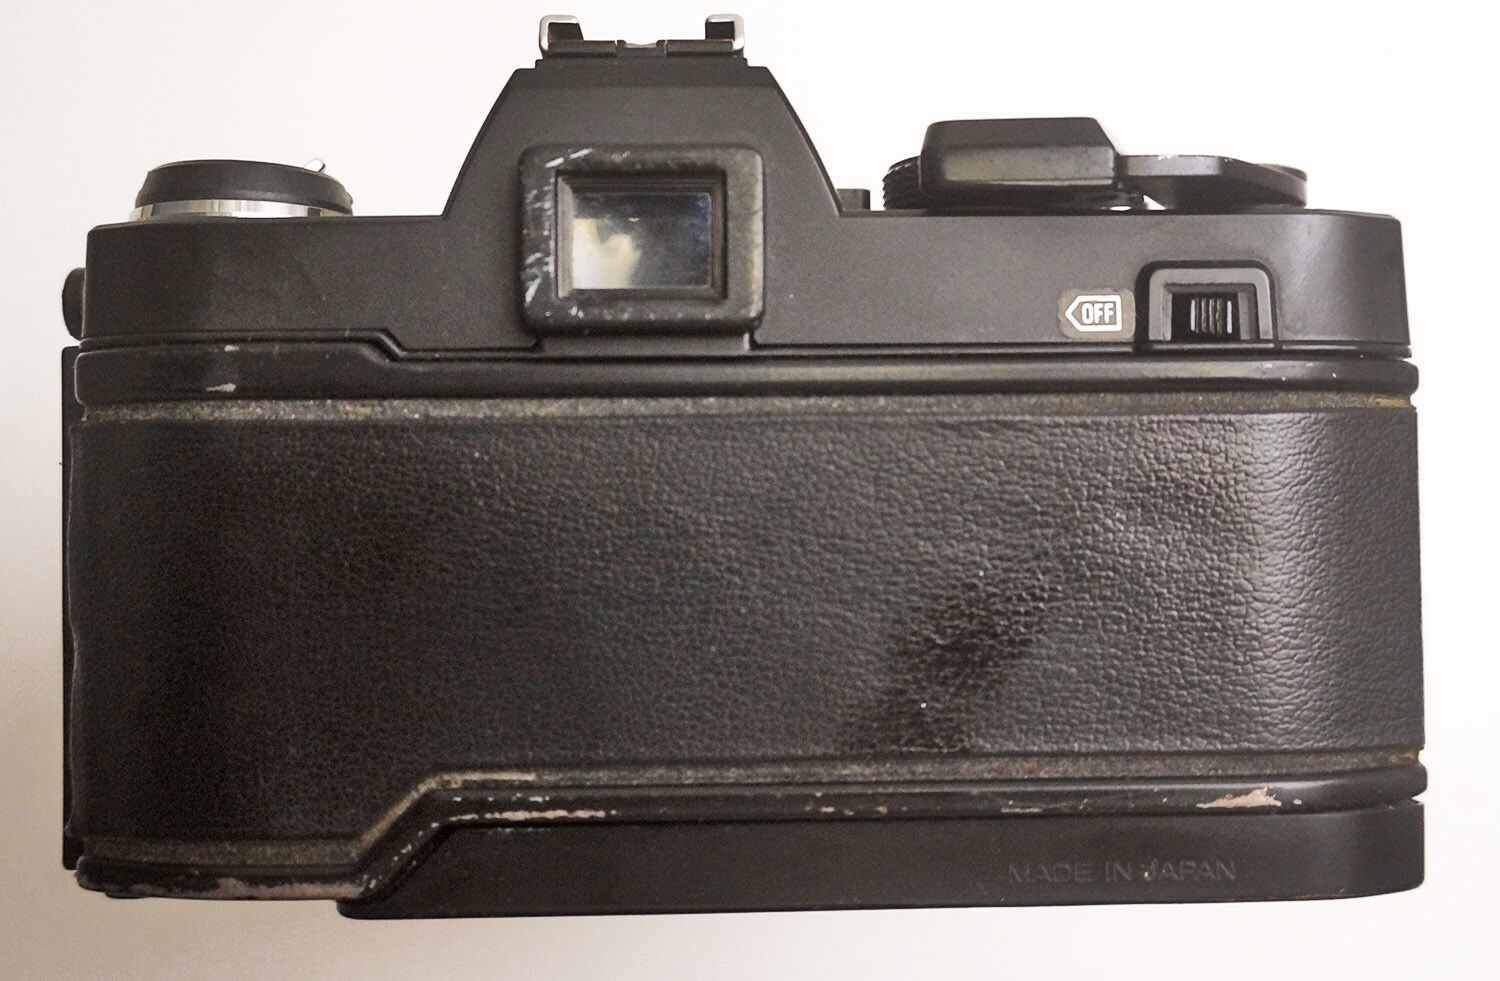 KONICA AUTOREFLEX TC, 35mm Camera With Underground Zoom 3.9/80-200 Lens - $65.00